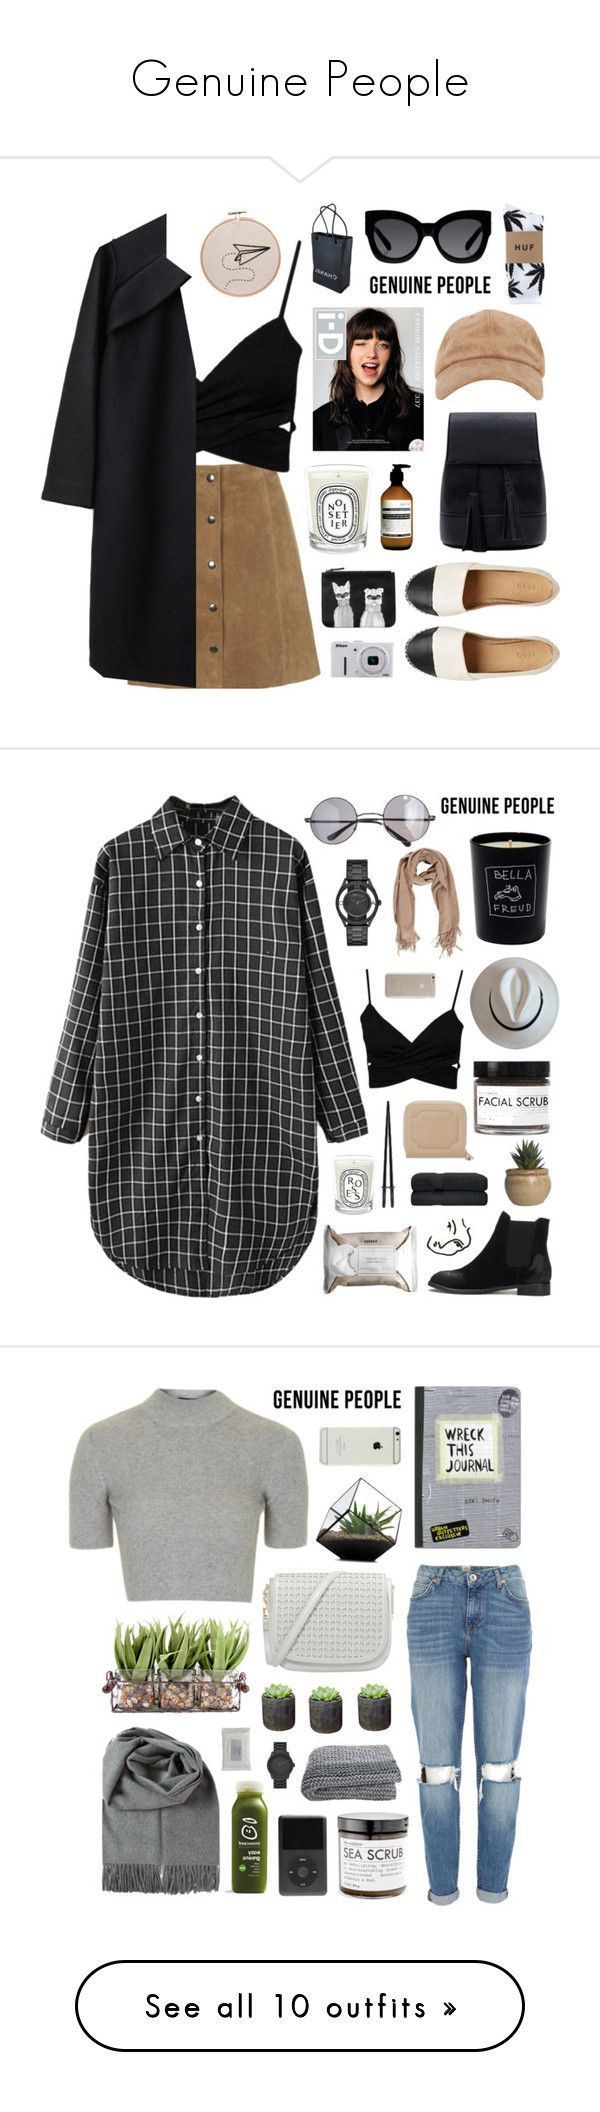 9 Best Outfit Images On Pinterest Blouses Shoe Bag And Top Tendencies Short Shirt Feather Print Black Hitam L Women Strap Floral Printed Pleats Tunic Swing Dress Summer Slim Post By Togemall